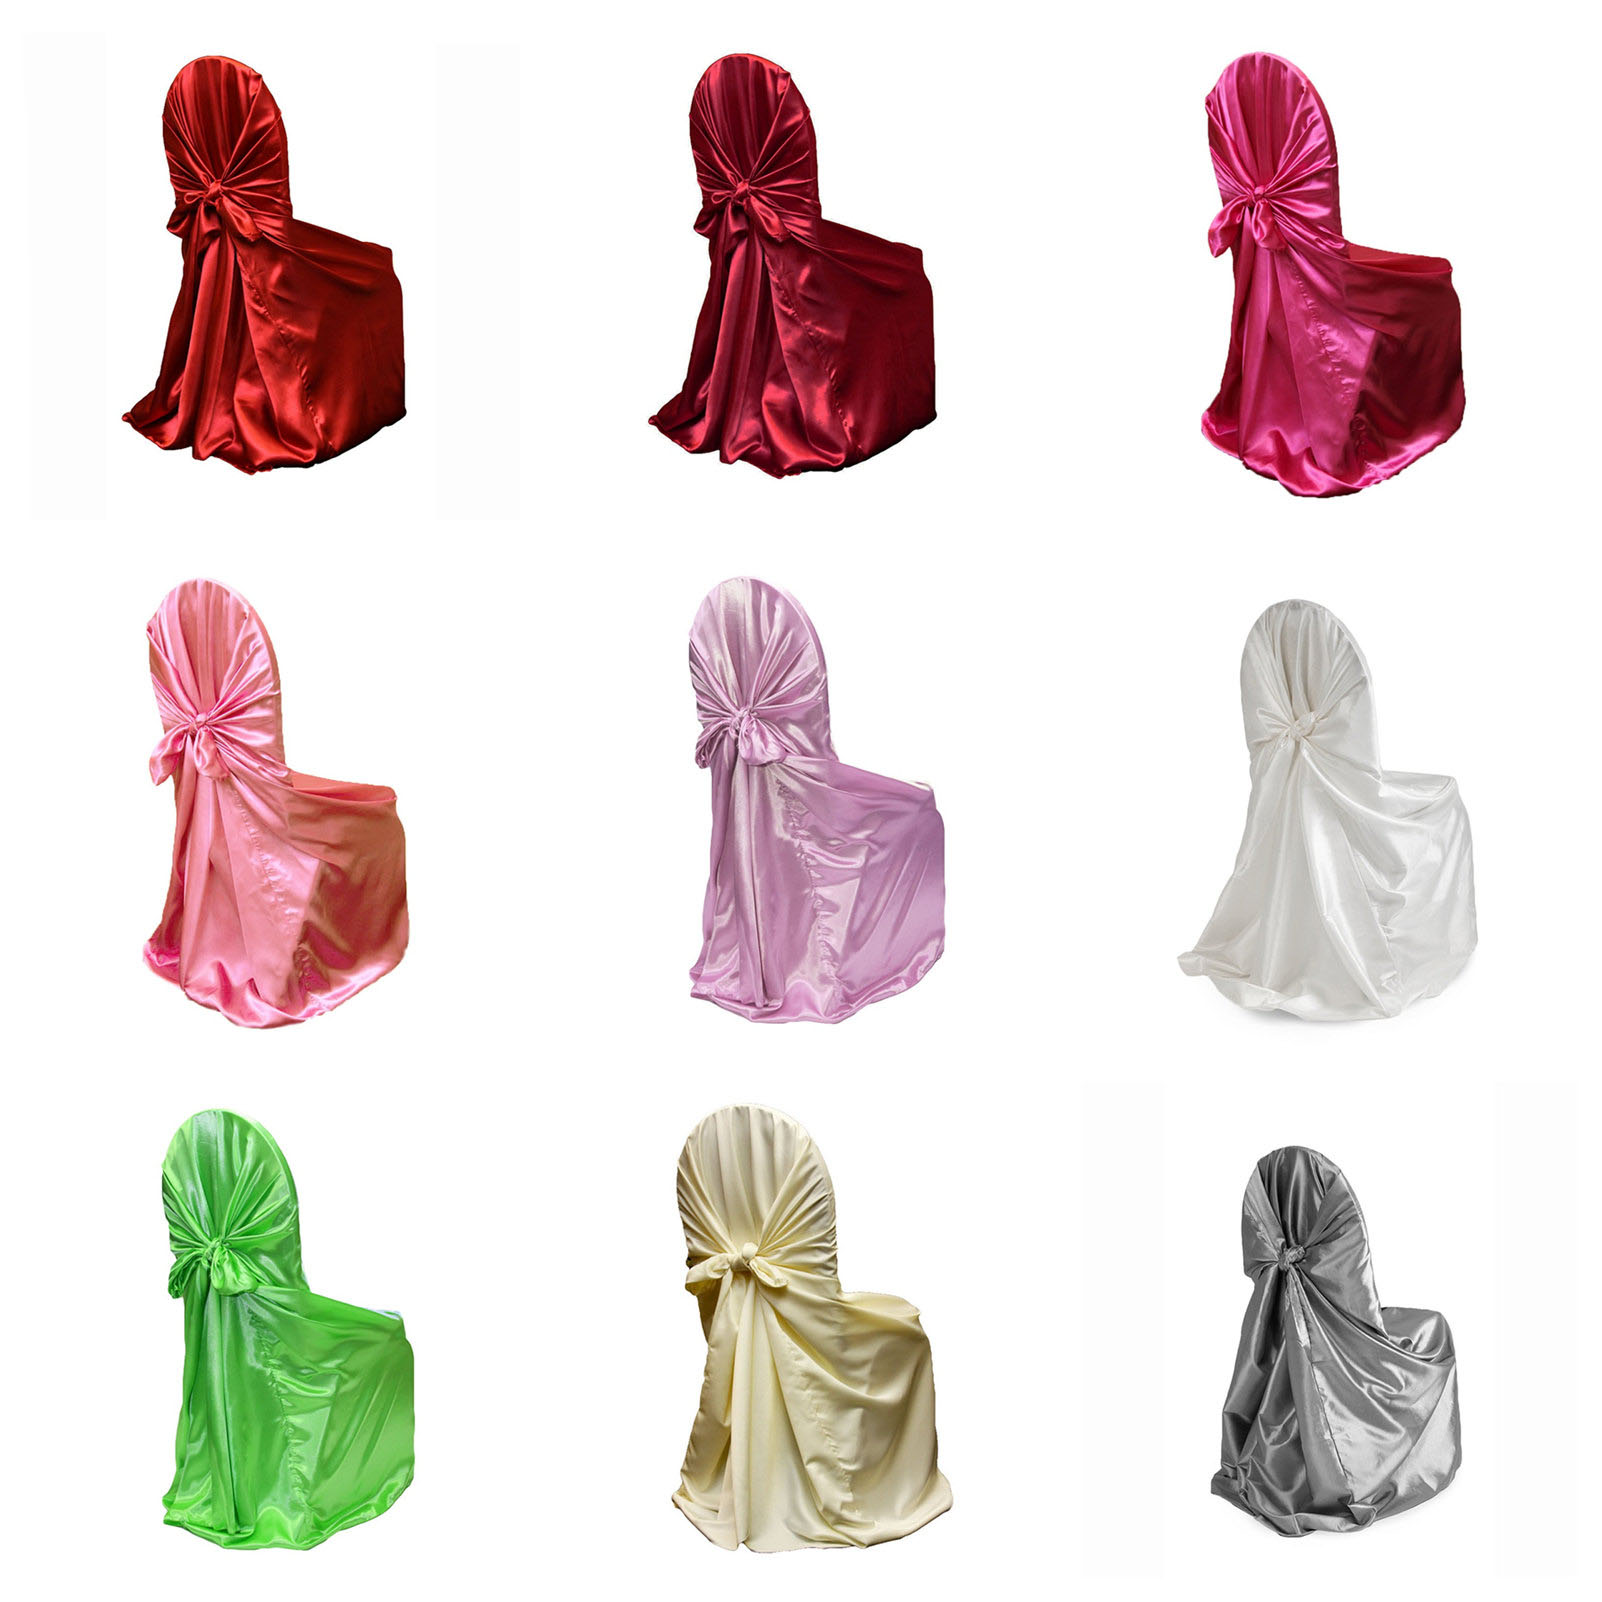 10pcs 43 x55 Universal Satin Chair Cover Seat Chair Decor For Banquet Hotel Wedding Party Decoration